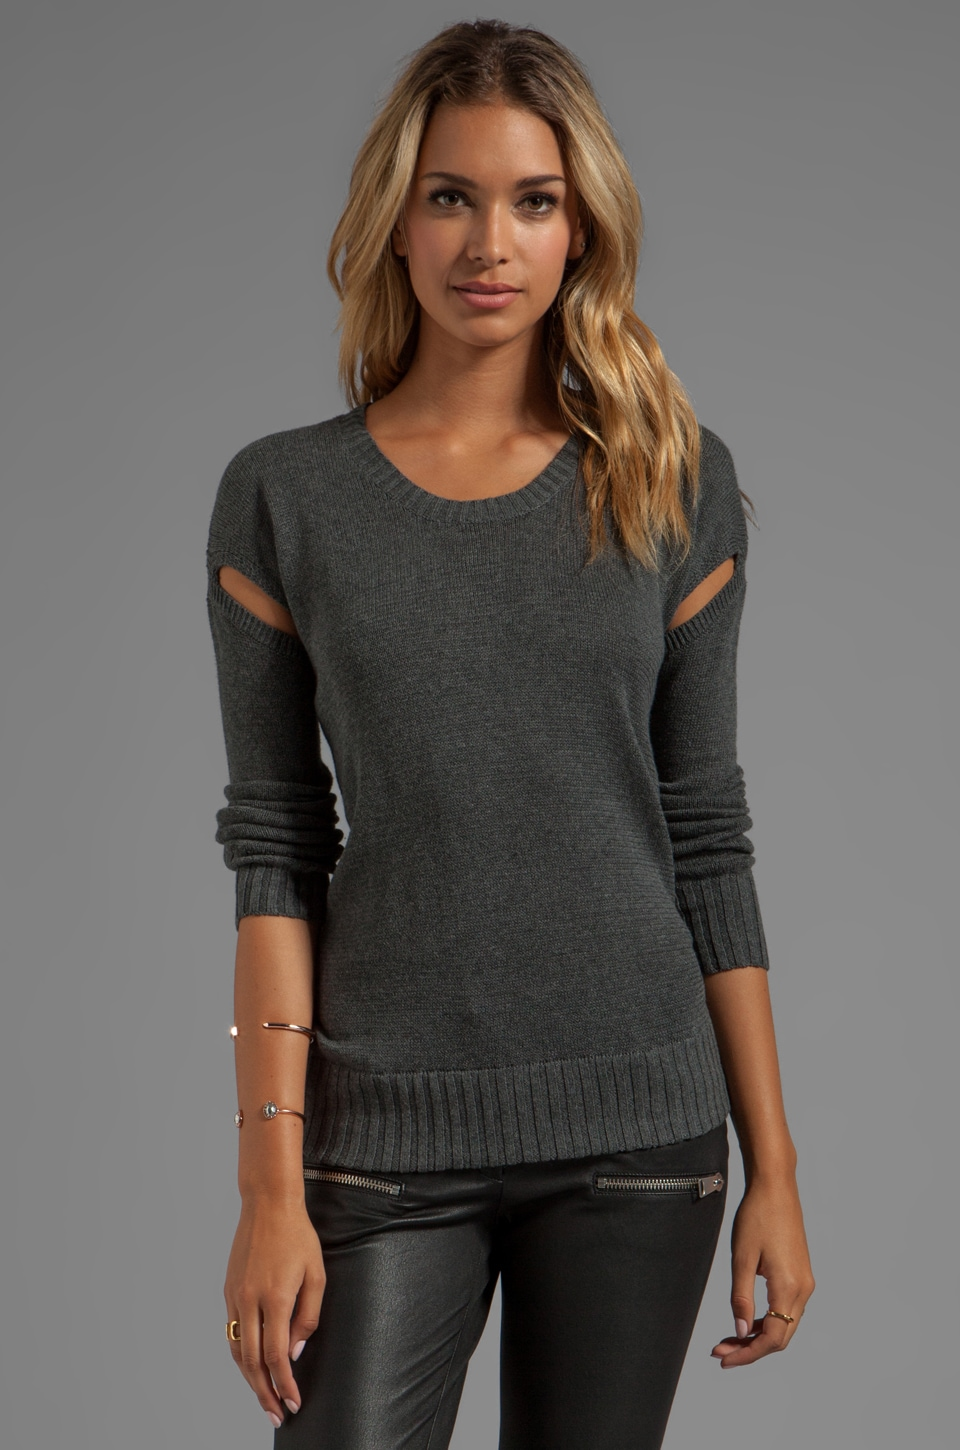 LA Made Crew Neck Sweater with Cut-Out Detail in Anthracite